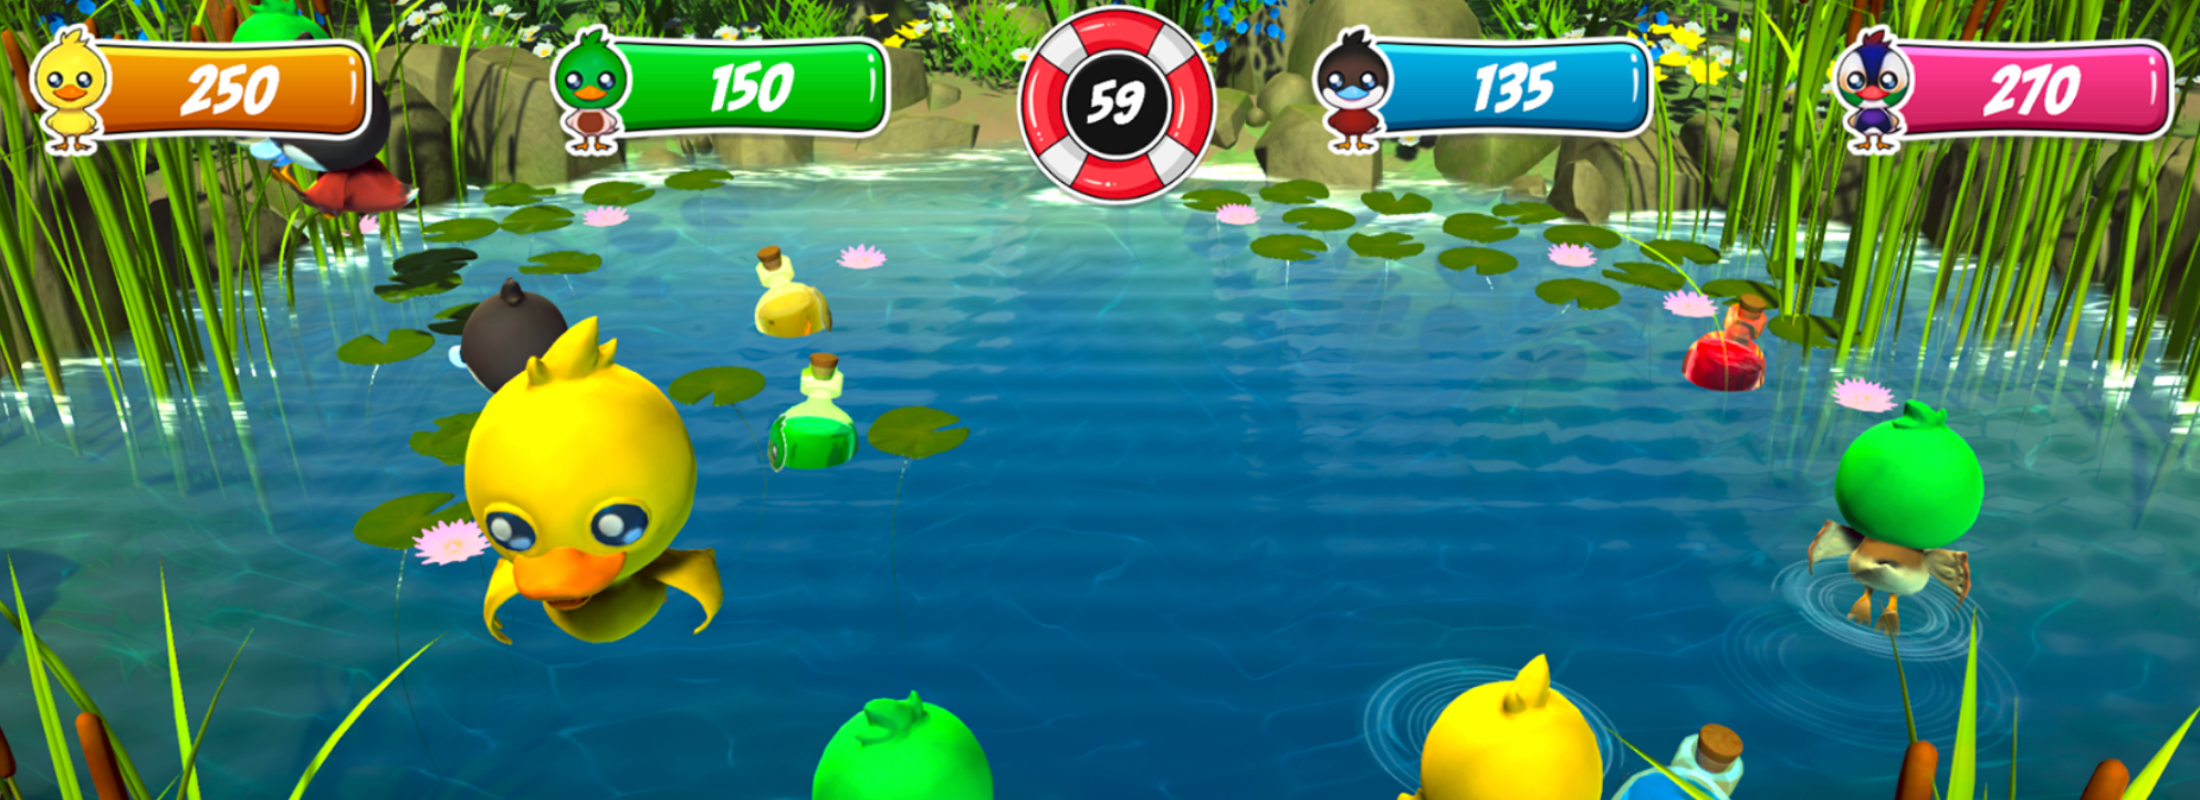 Gameplay picture 2 Duck panic